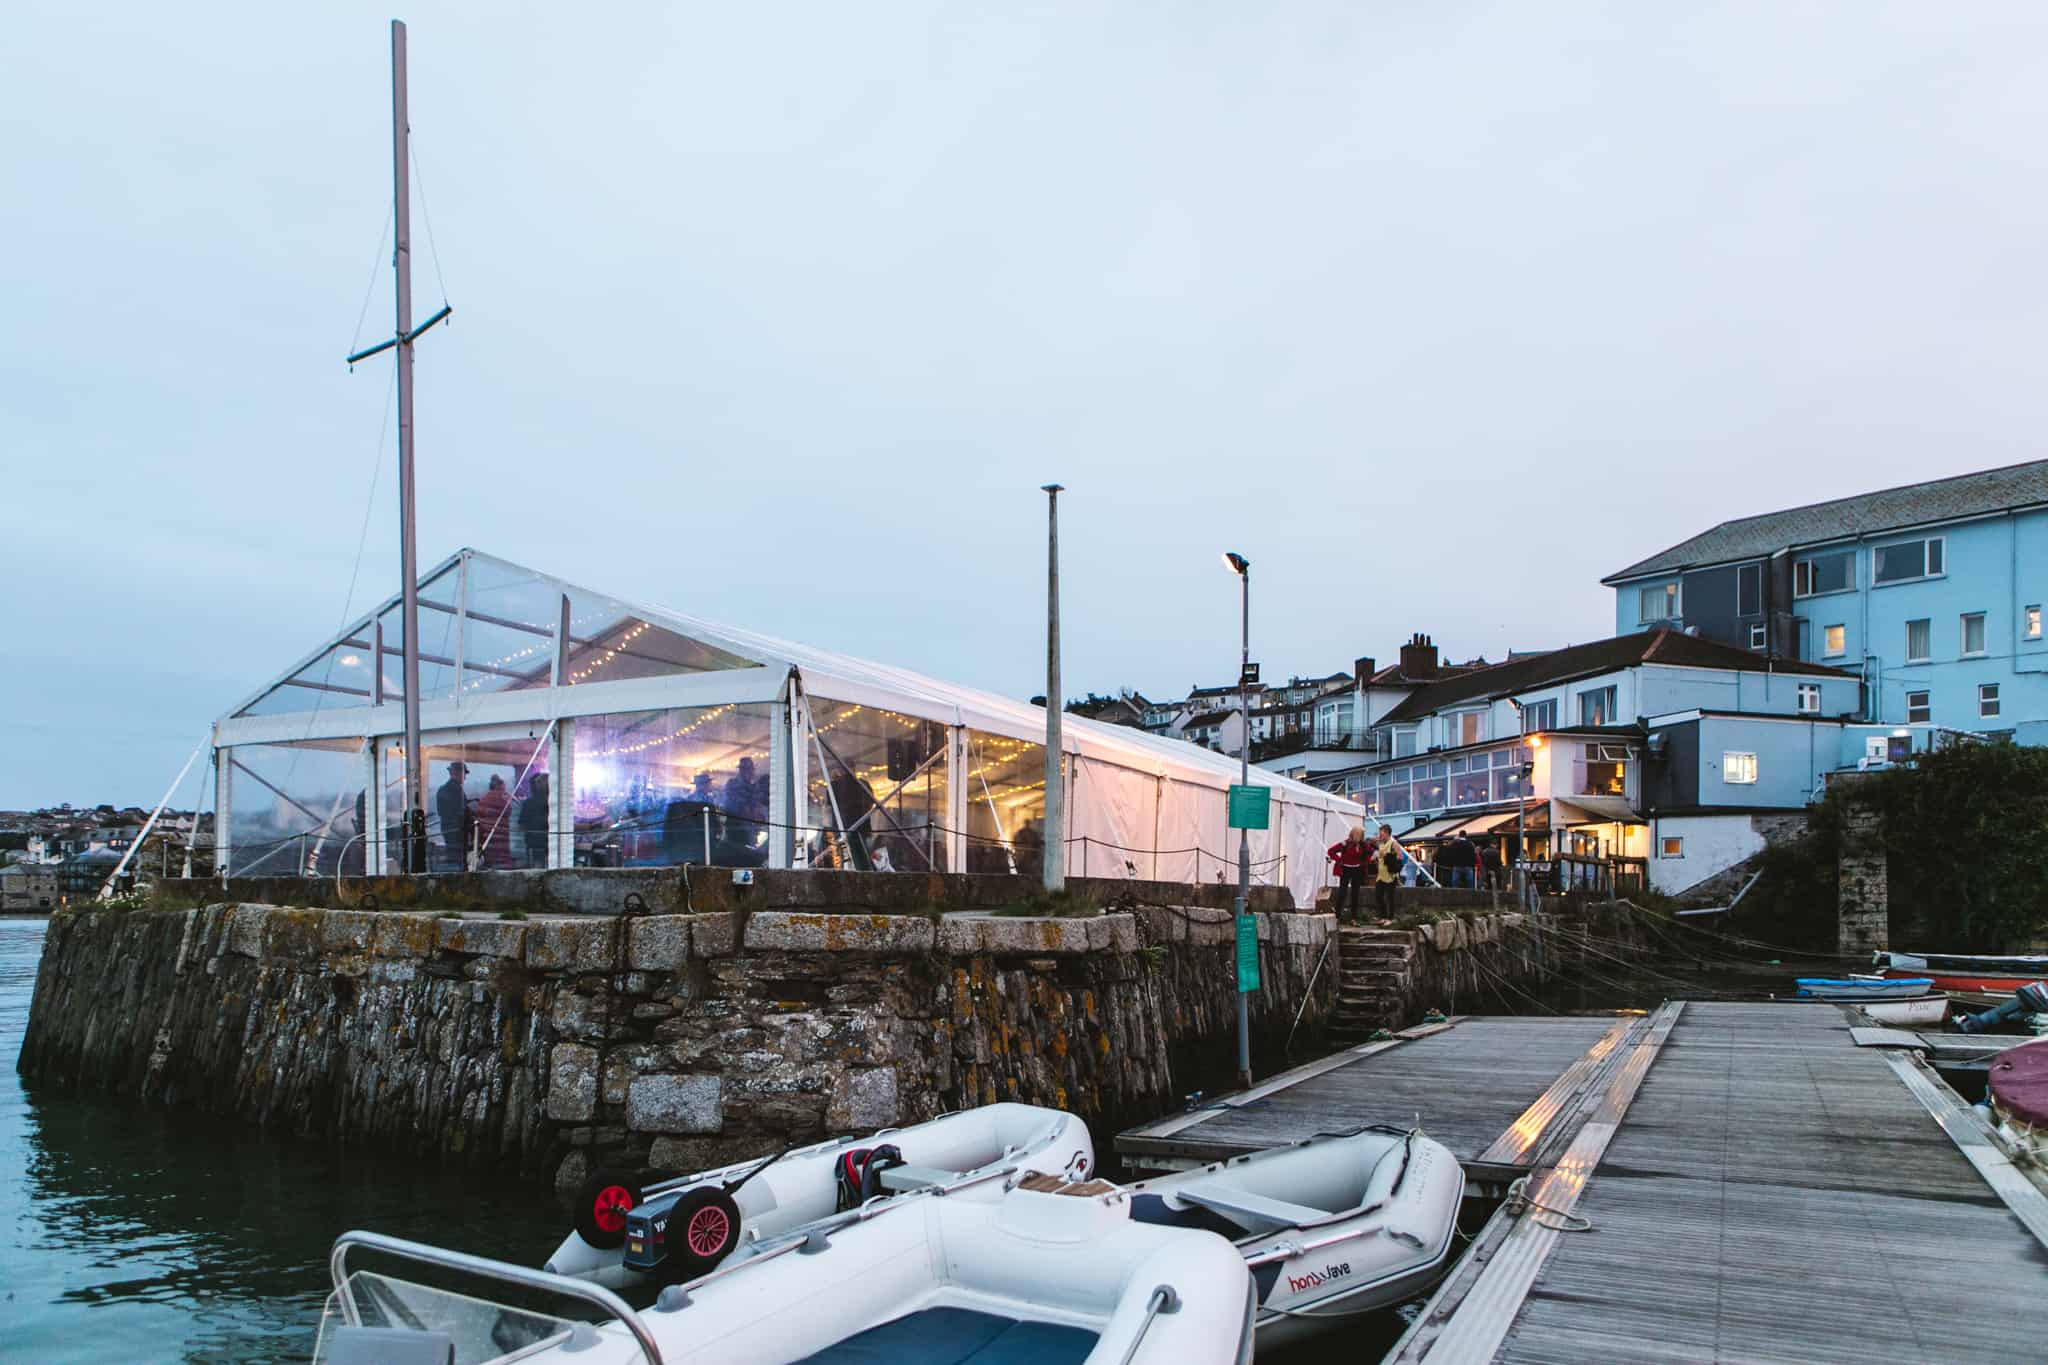 falmouth-week-at-the-working-boat-pub-live-music-events-falmouth-cornwall (44 of 114)